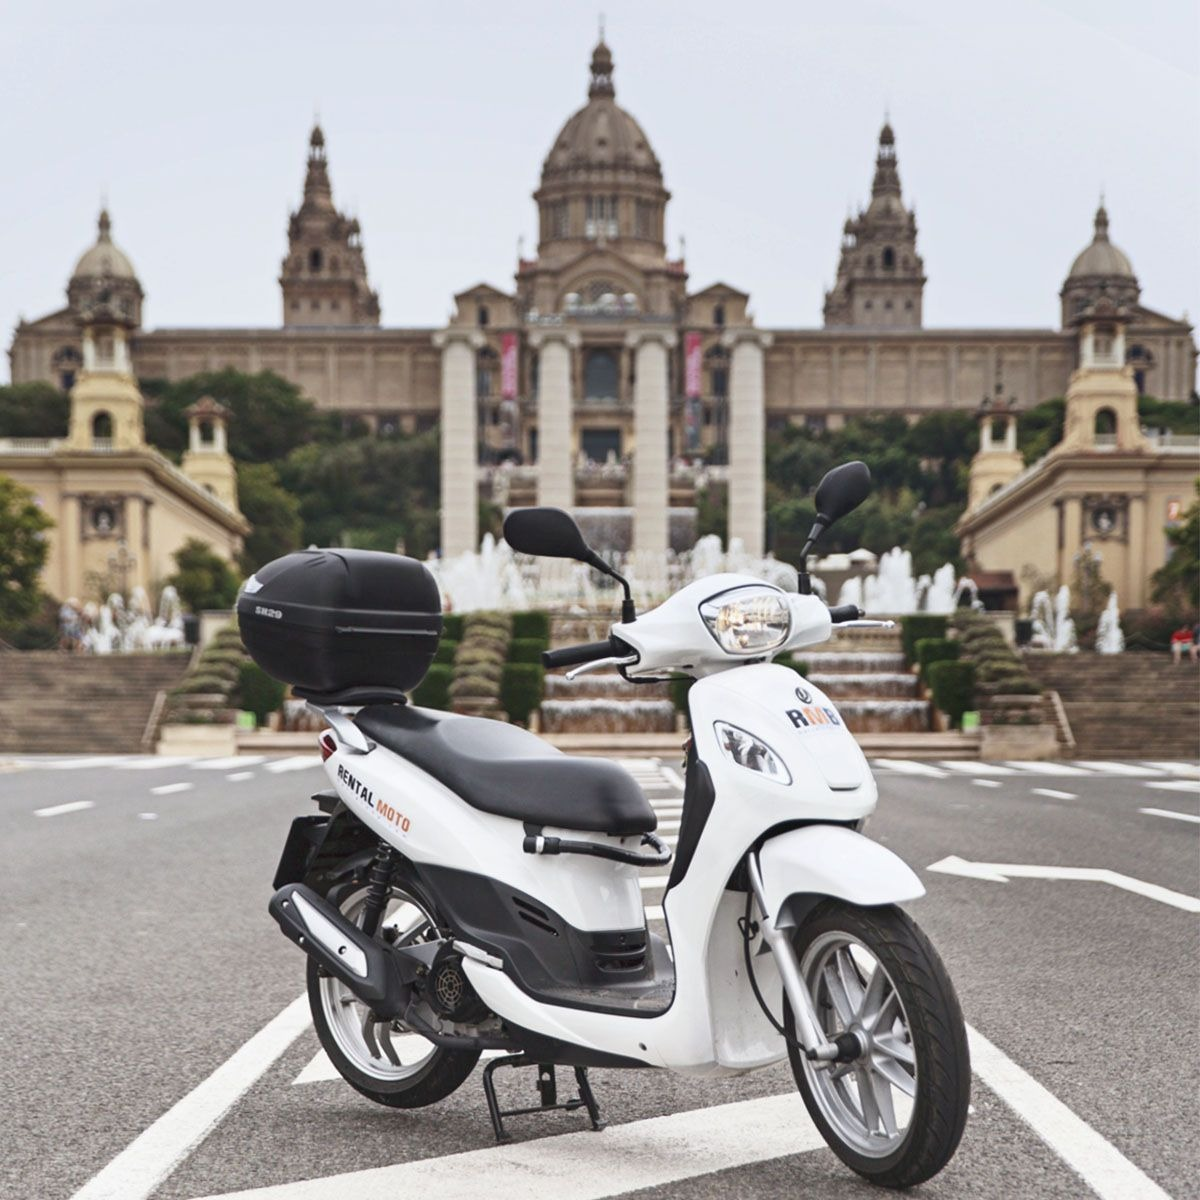 location de scooter à Barcelone